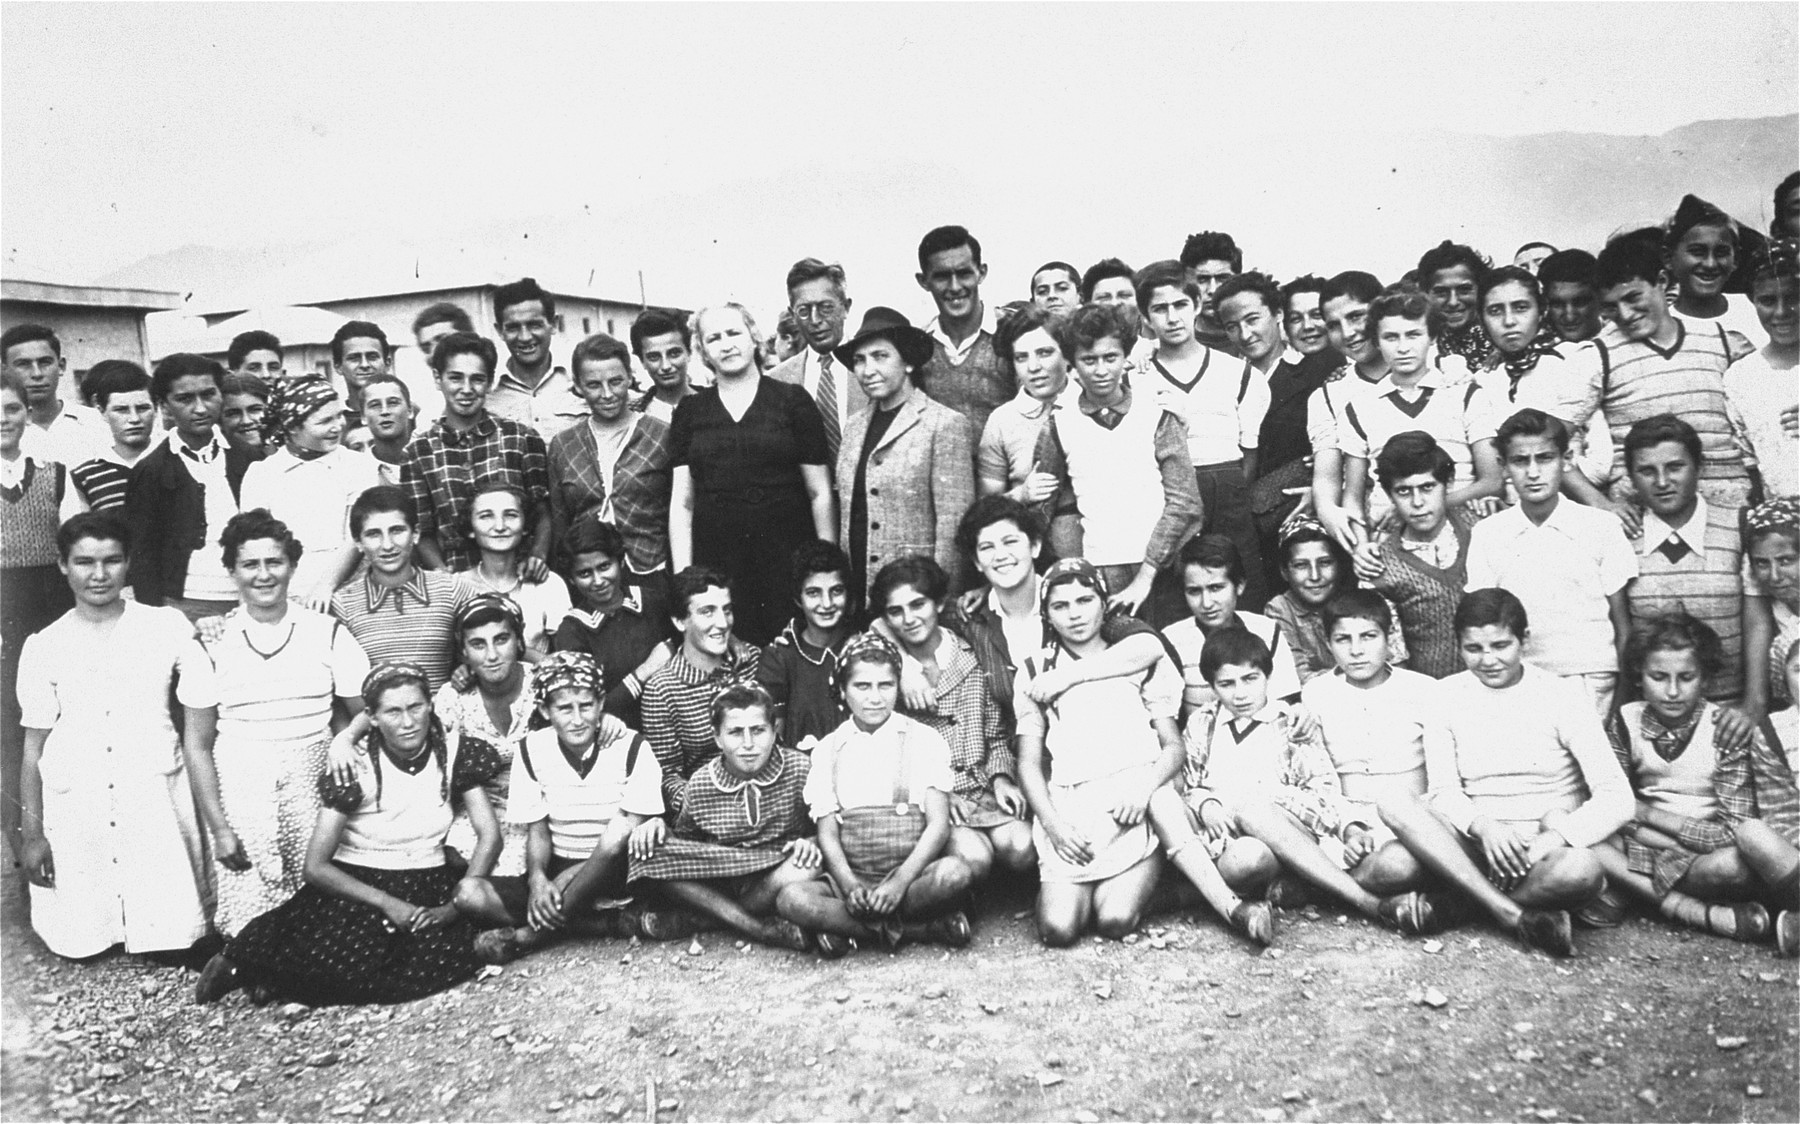 Group portrait of the members of the Teheran children's transport at a refugee camp in Teheran.